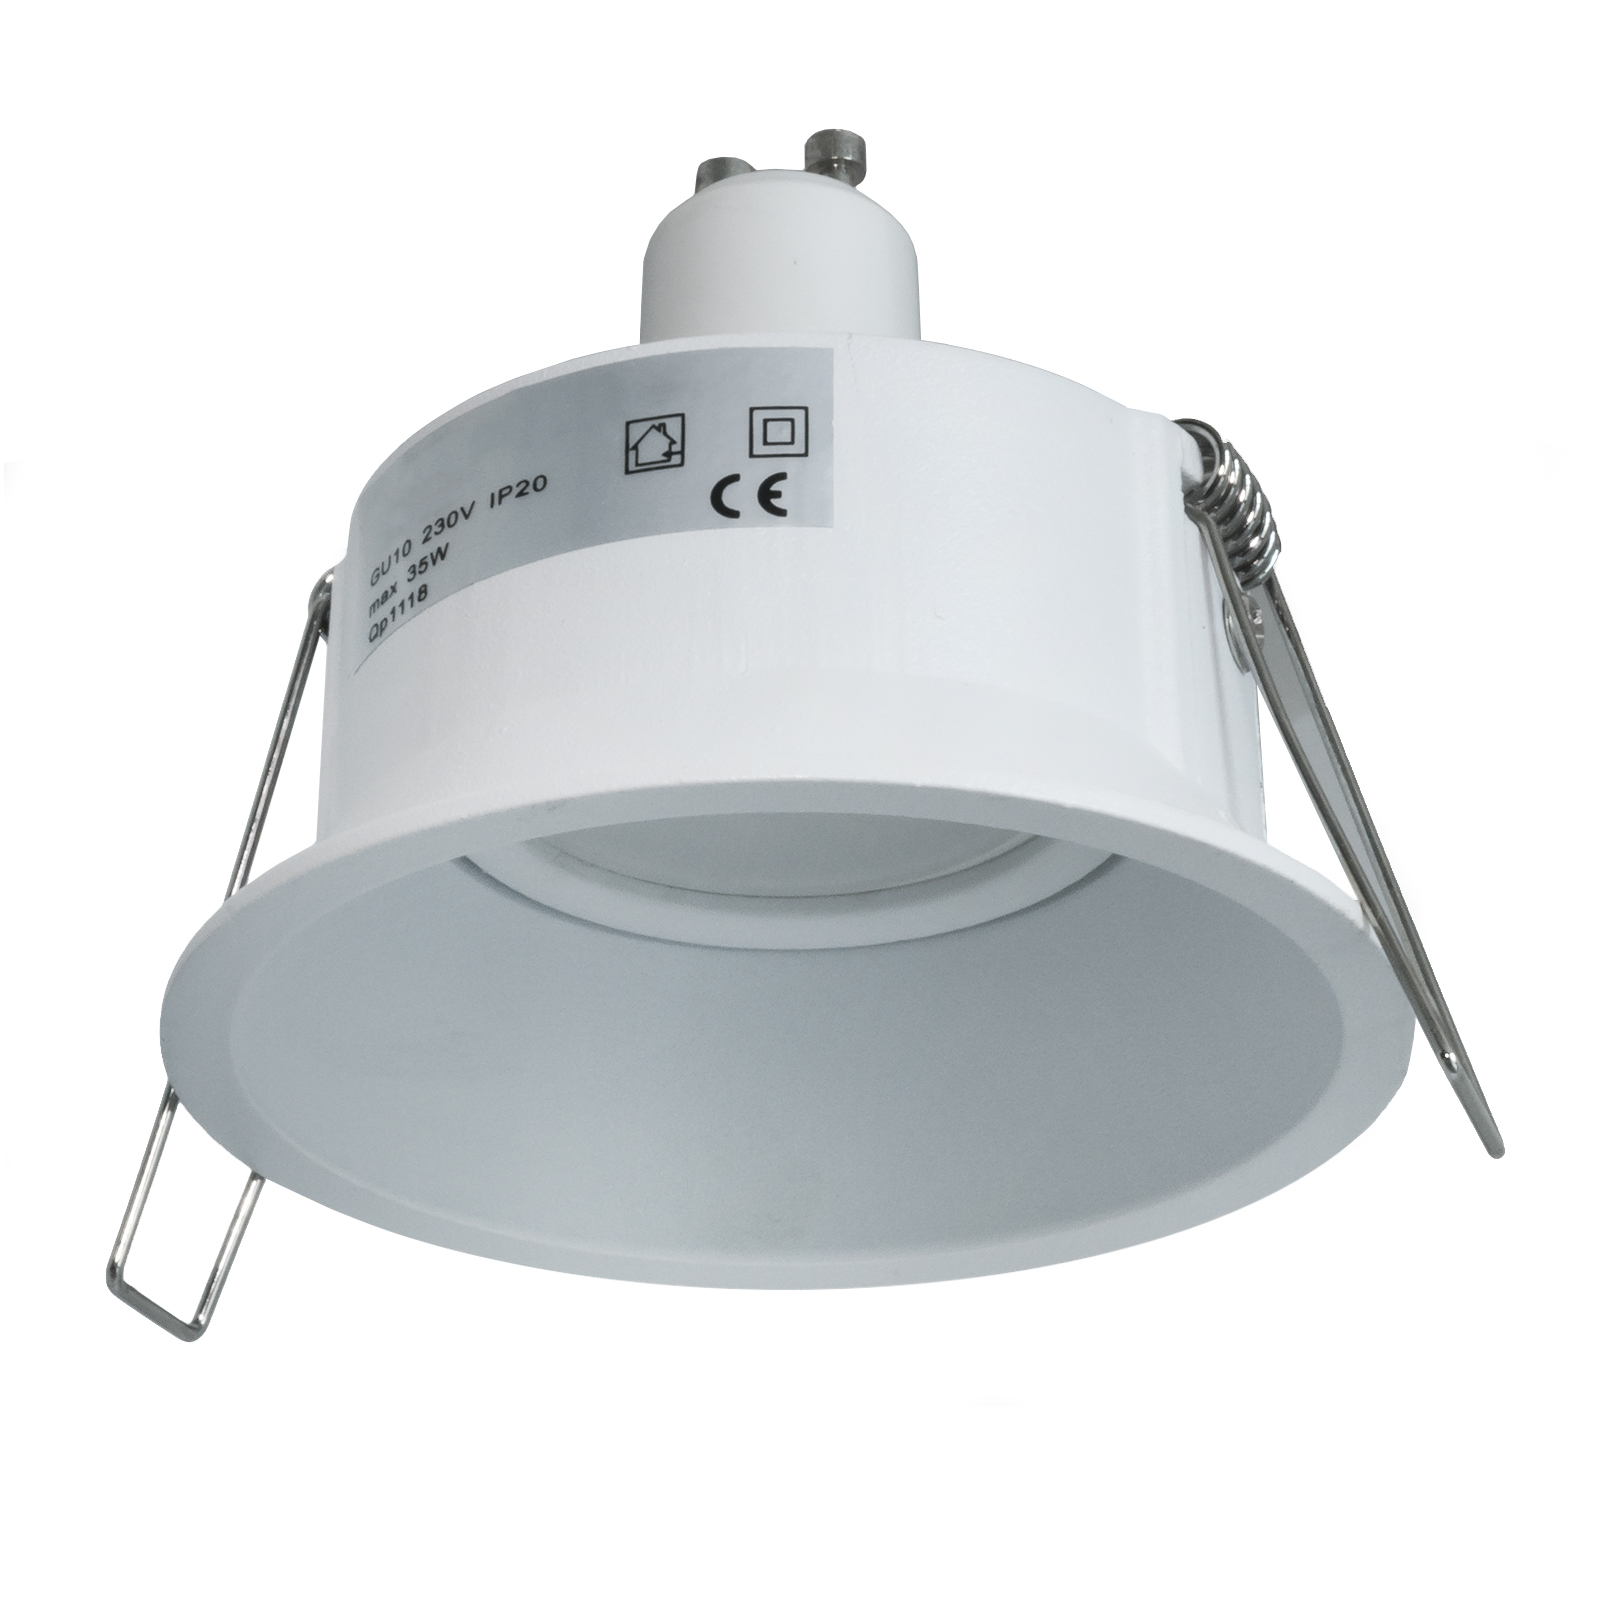 White spotlight recessed round, modern lights input LED lamp 5W GU10 bore 85mm